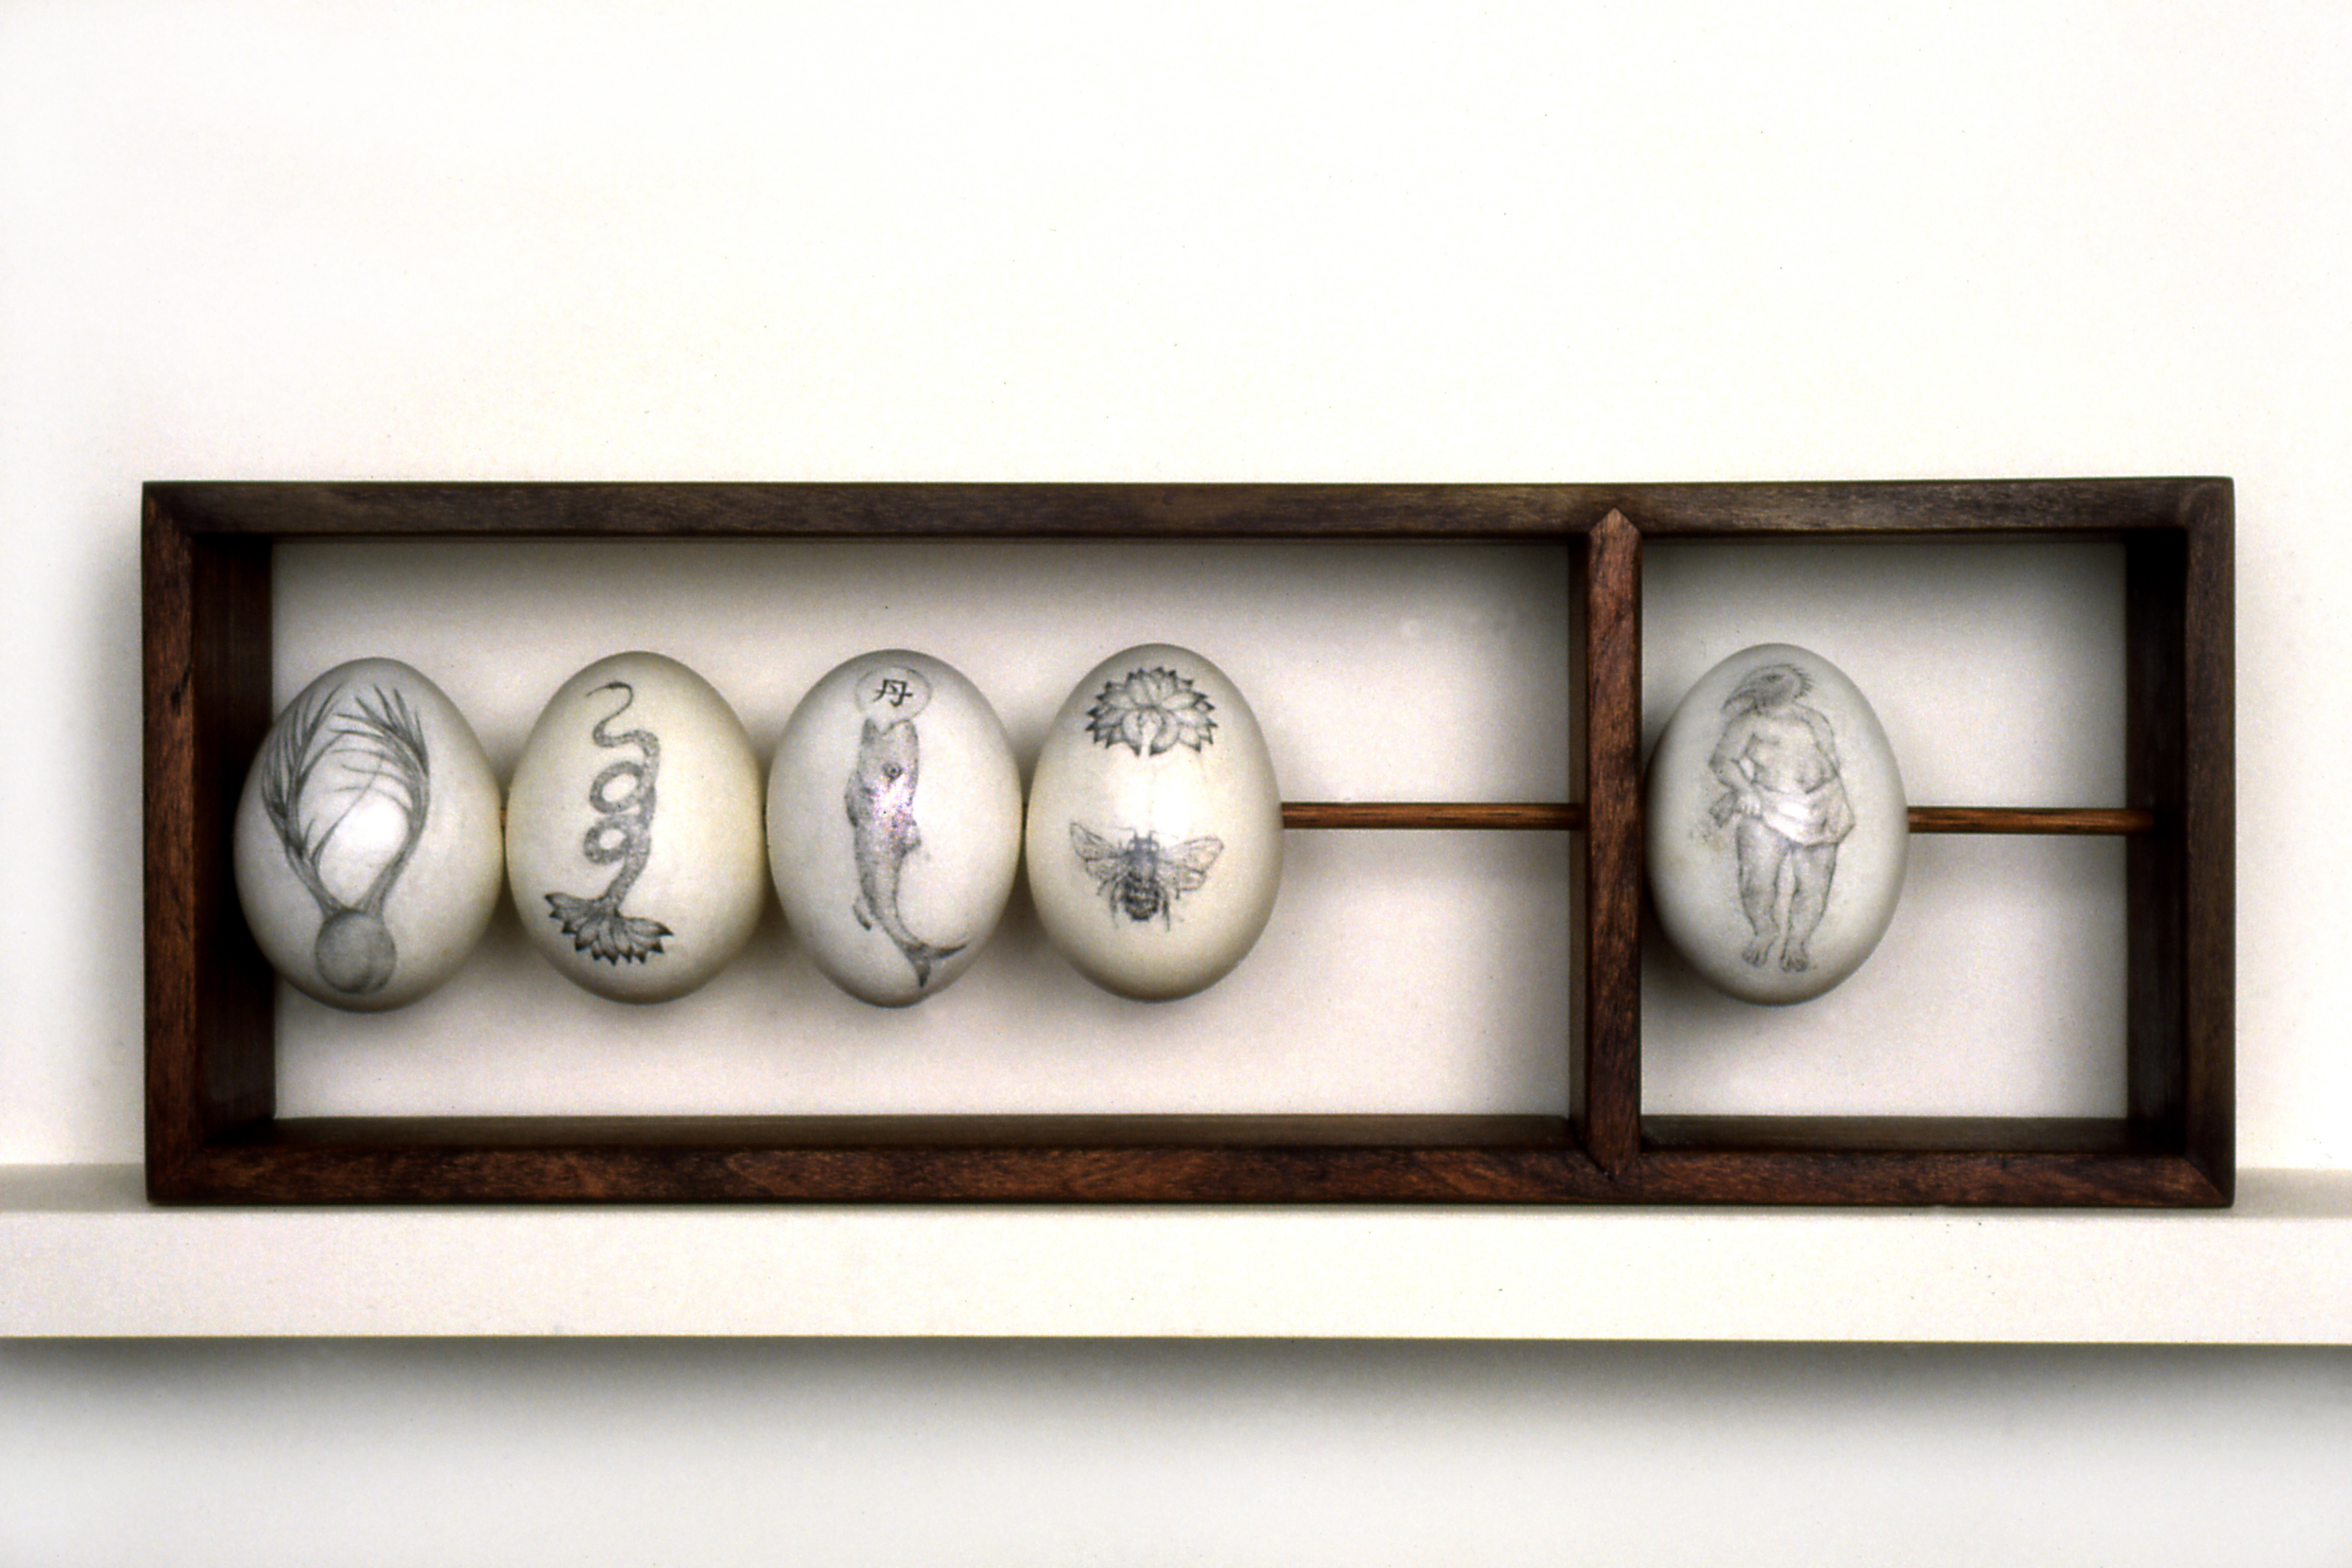 "ABACUS The  egg ""beads"" on this one-row abacus are embellished with graphite drawings of hybrid transformational symbols from various cultures, suggesting an alternative approach to mathematical certainty."